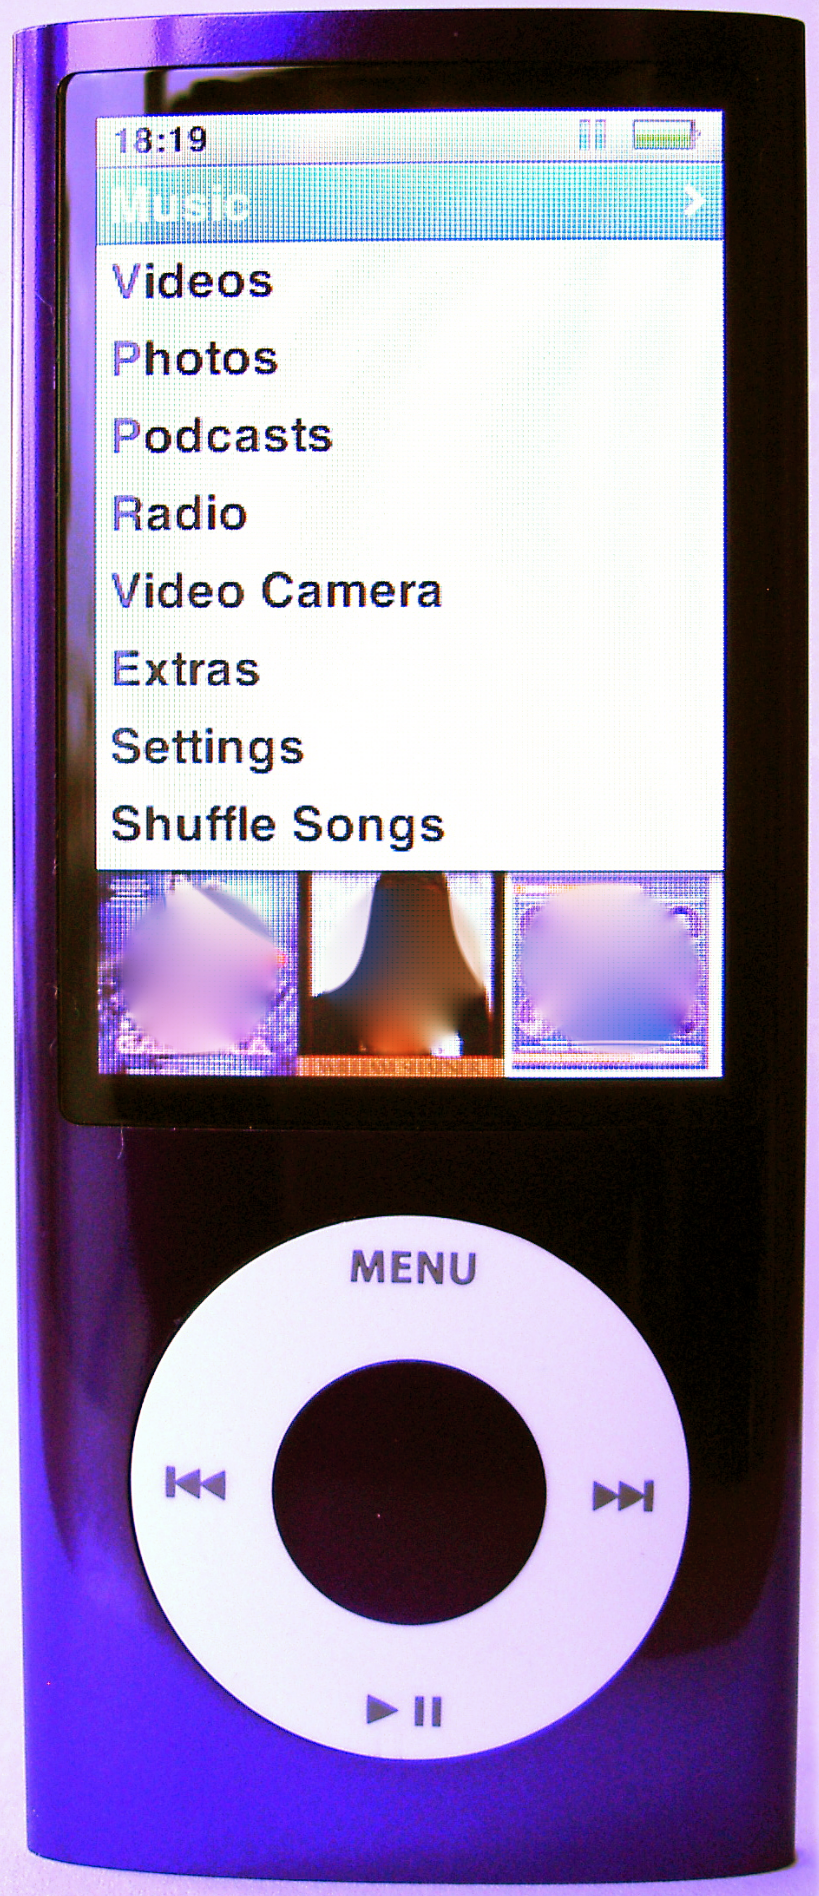 5, Purple iPod Nano 5G with camera, front and back views